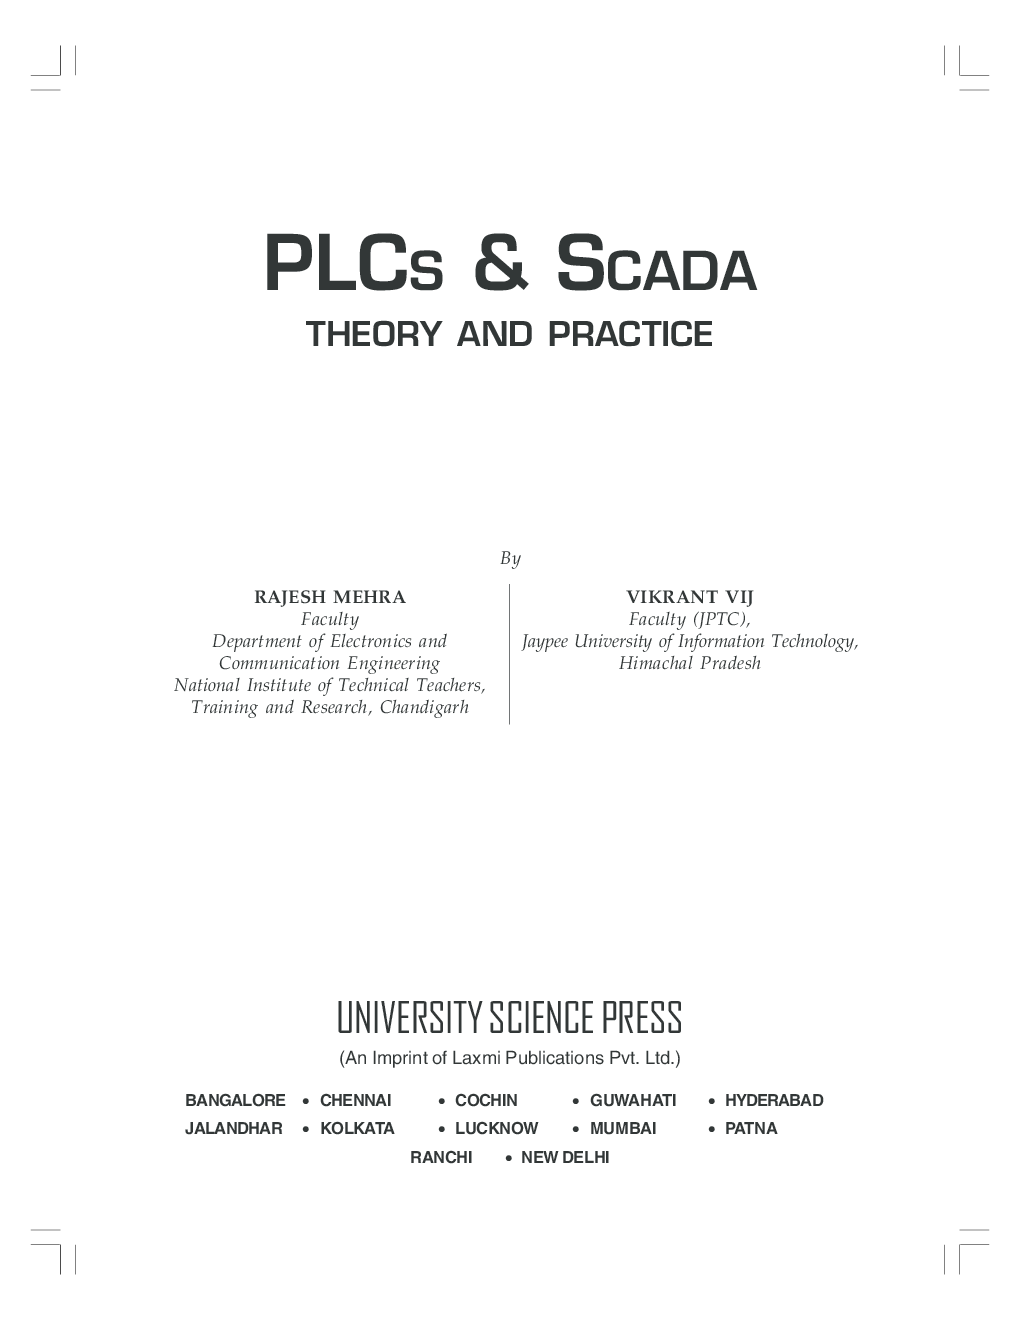 PLCS & SCADA Theory And Practice By Rajesh Mehra, Vikrant Vij - Page 3